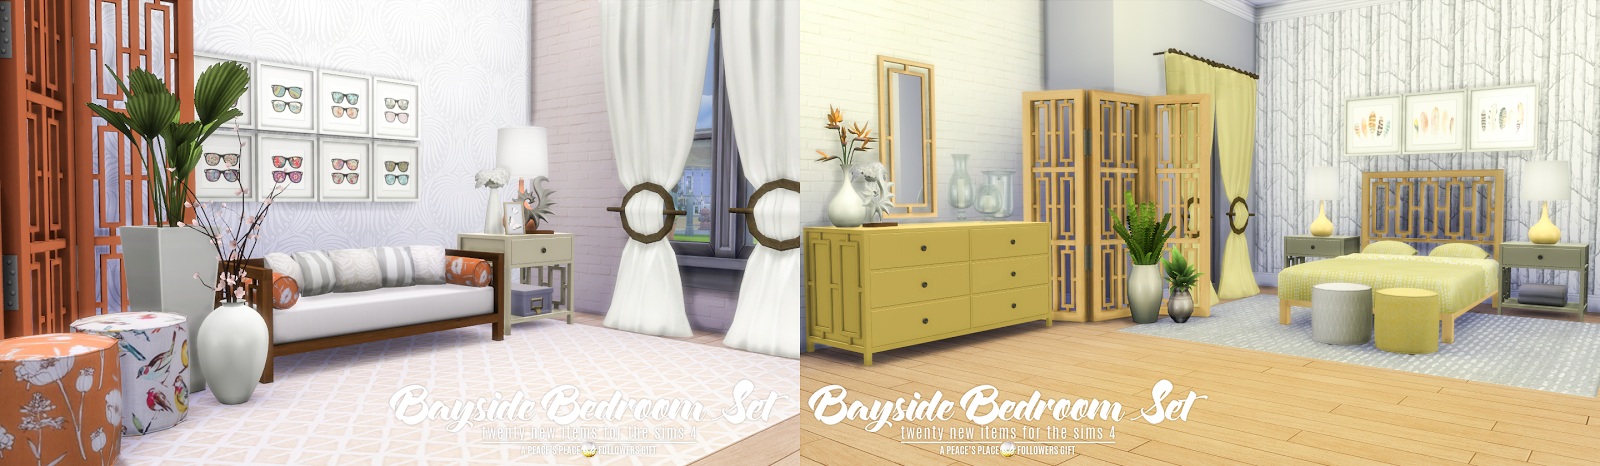 Bayside Furniture Set - 20 New Items by Peacemaker ic